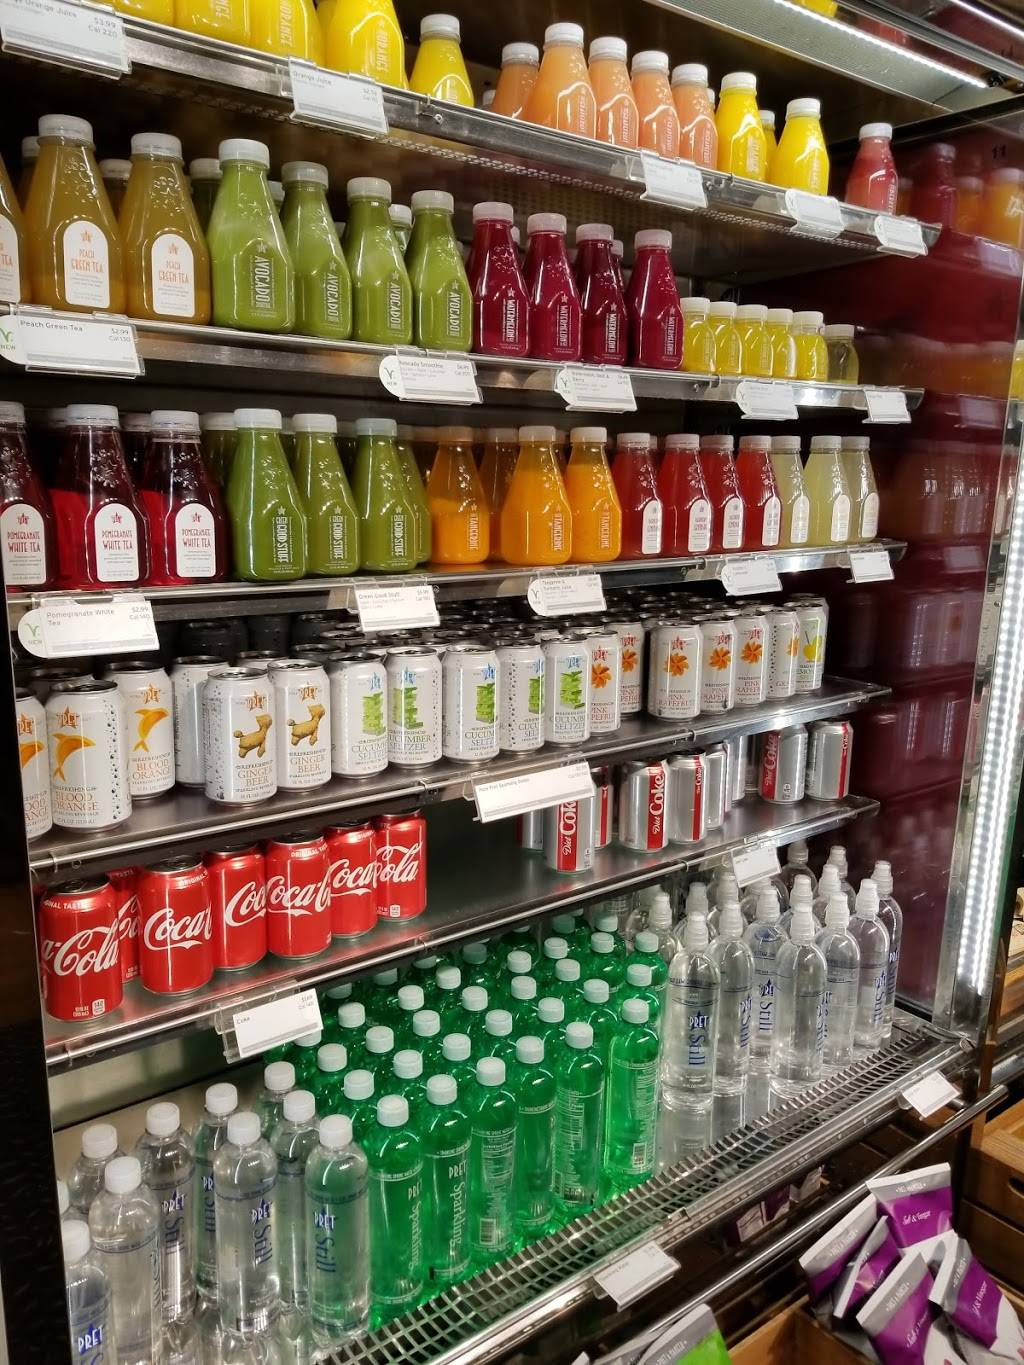 Pret A Manger | cafe | 50 Broadway, New York, NY 10004, USA | 2123440105 OR +1 212-344-0105